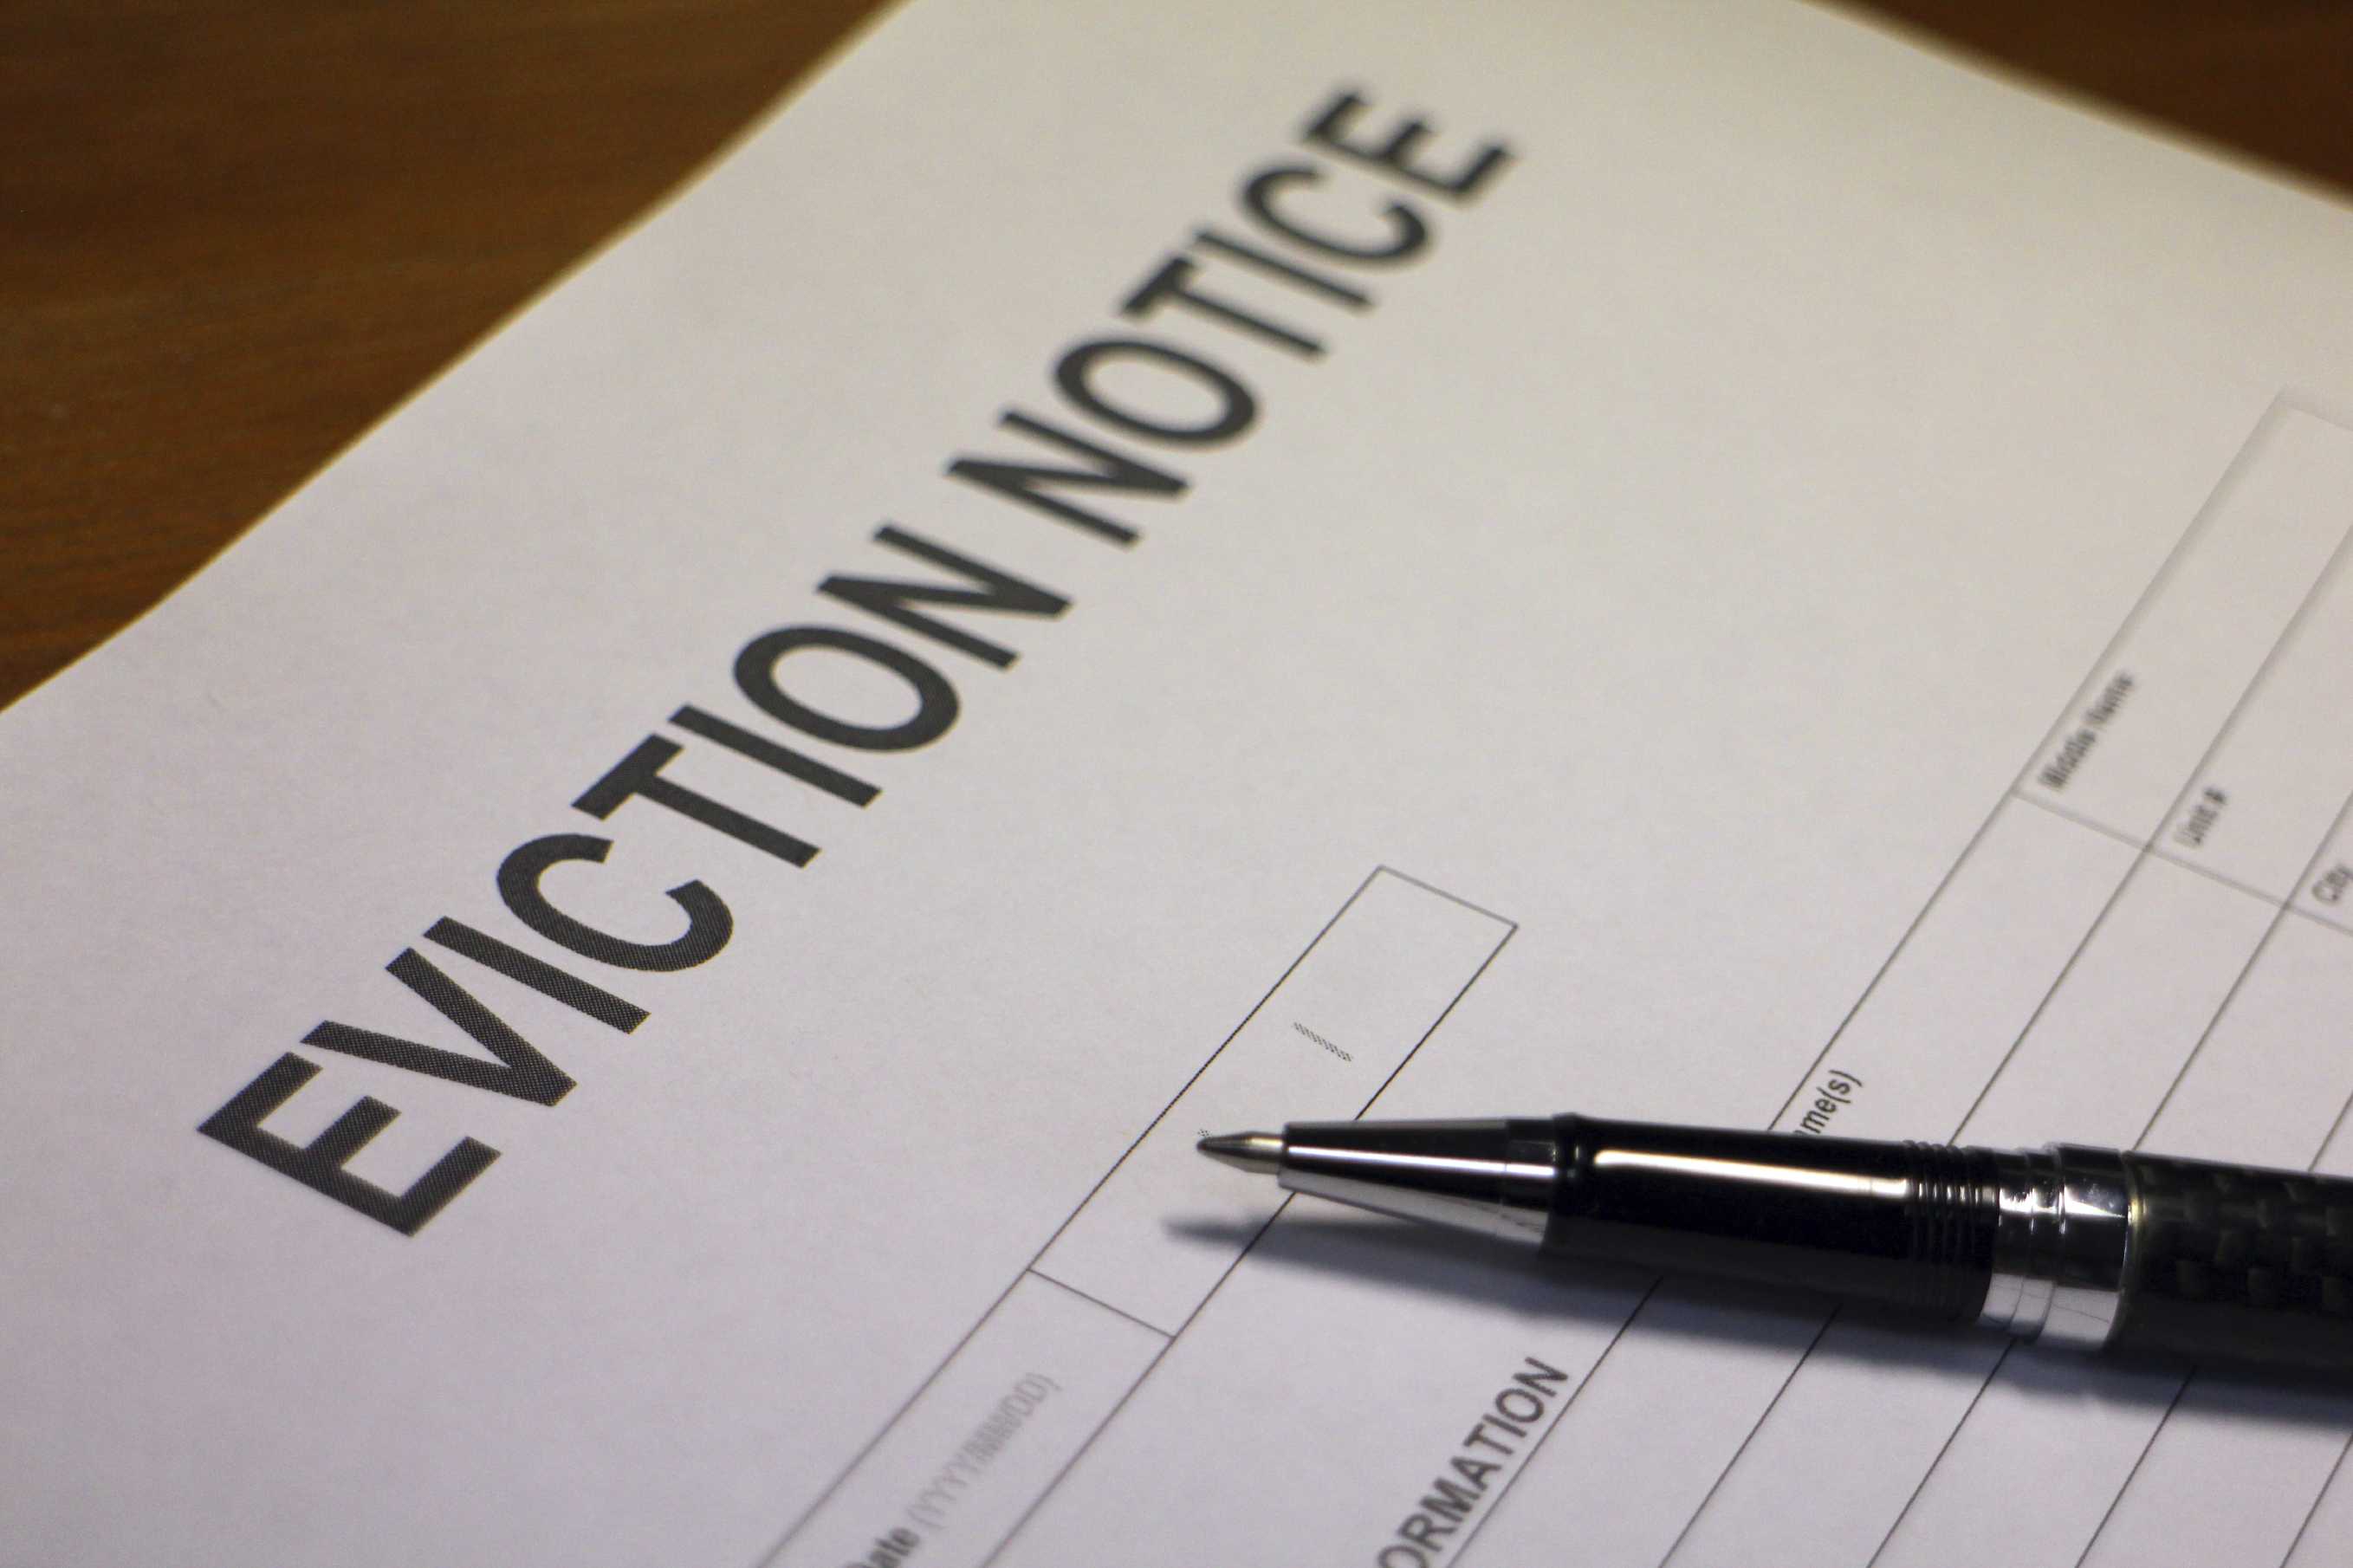 Eviction Notice Buy-to-let property